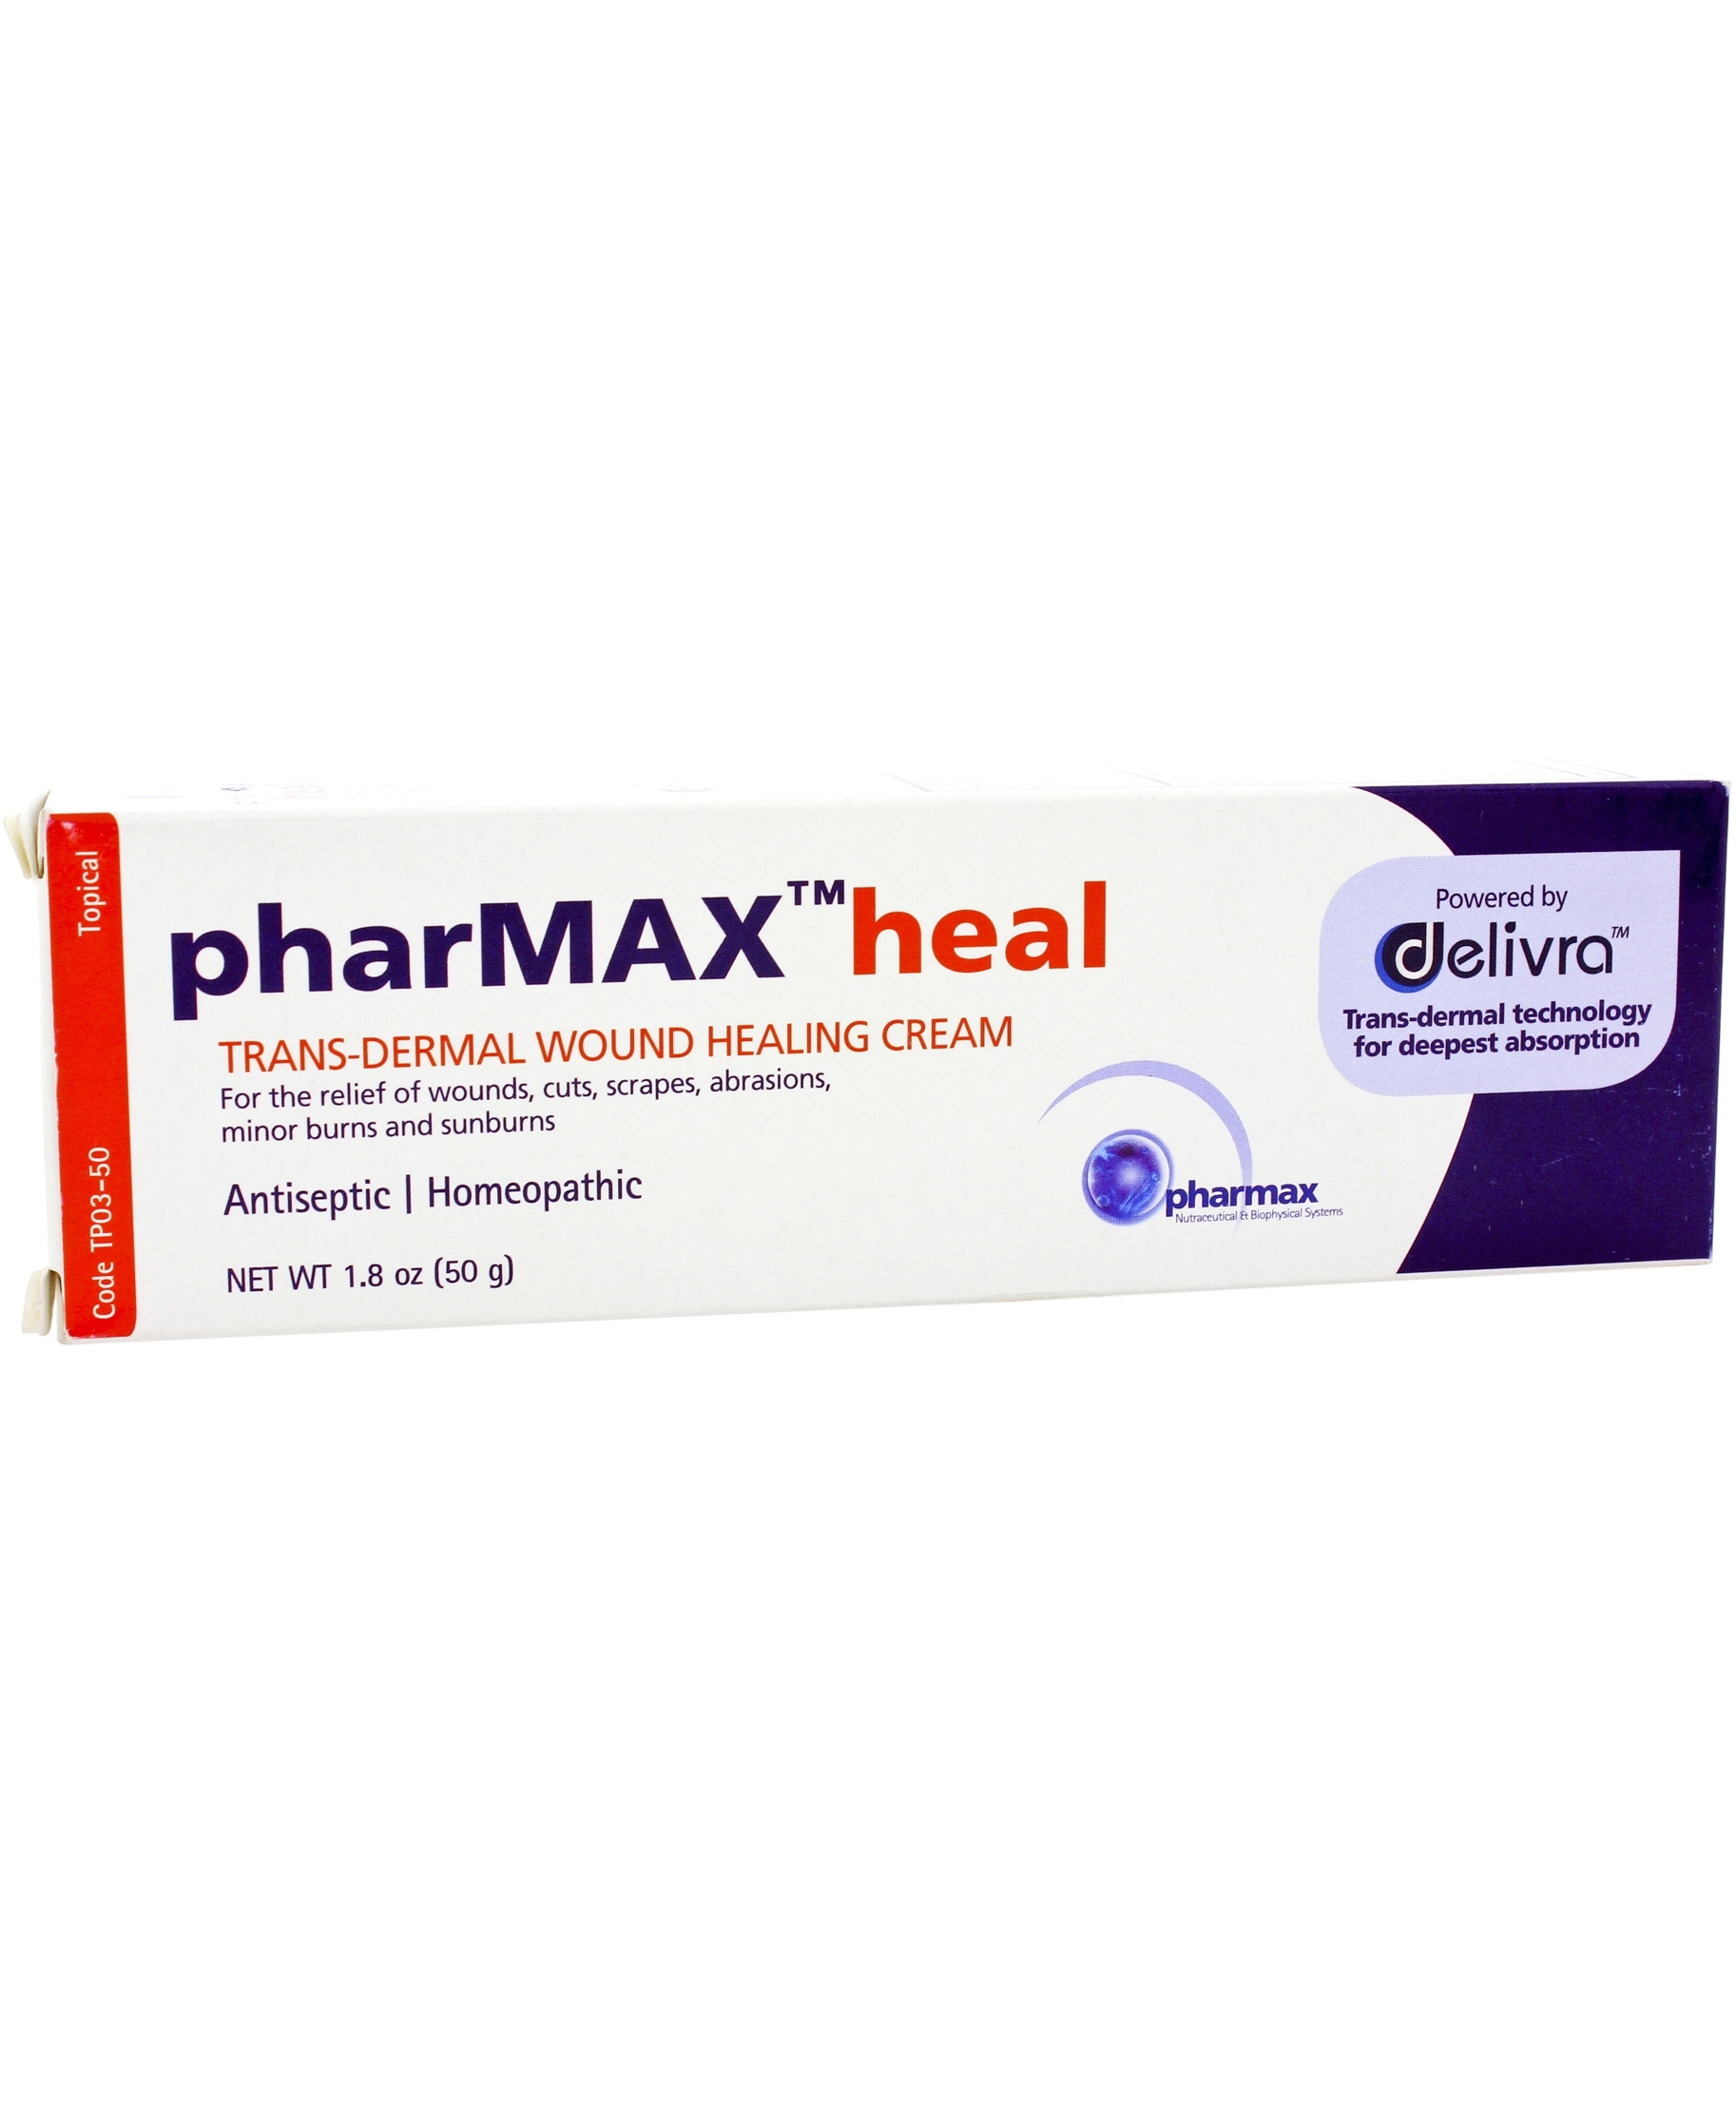 pharMAX heal (Topical Antiseptic Cream) 50 grams